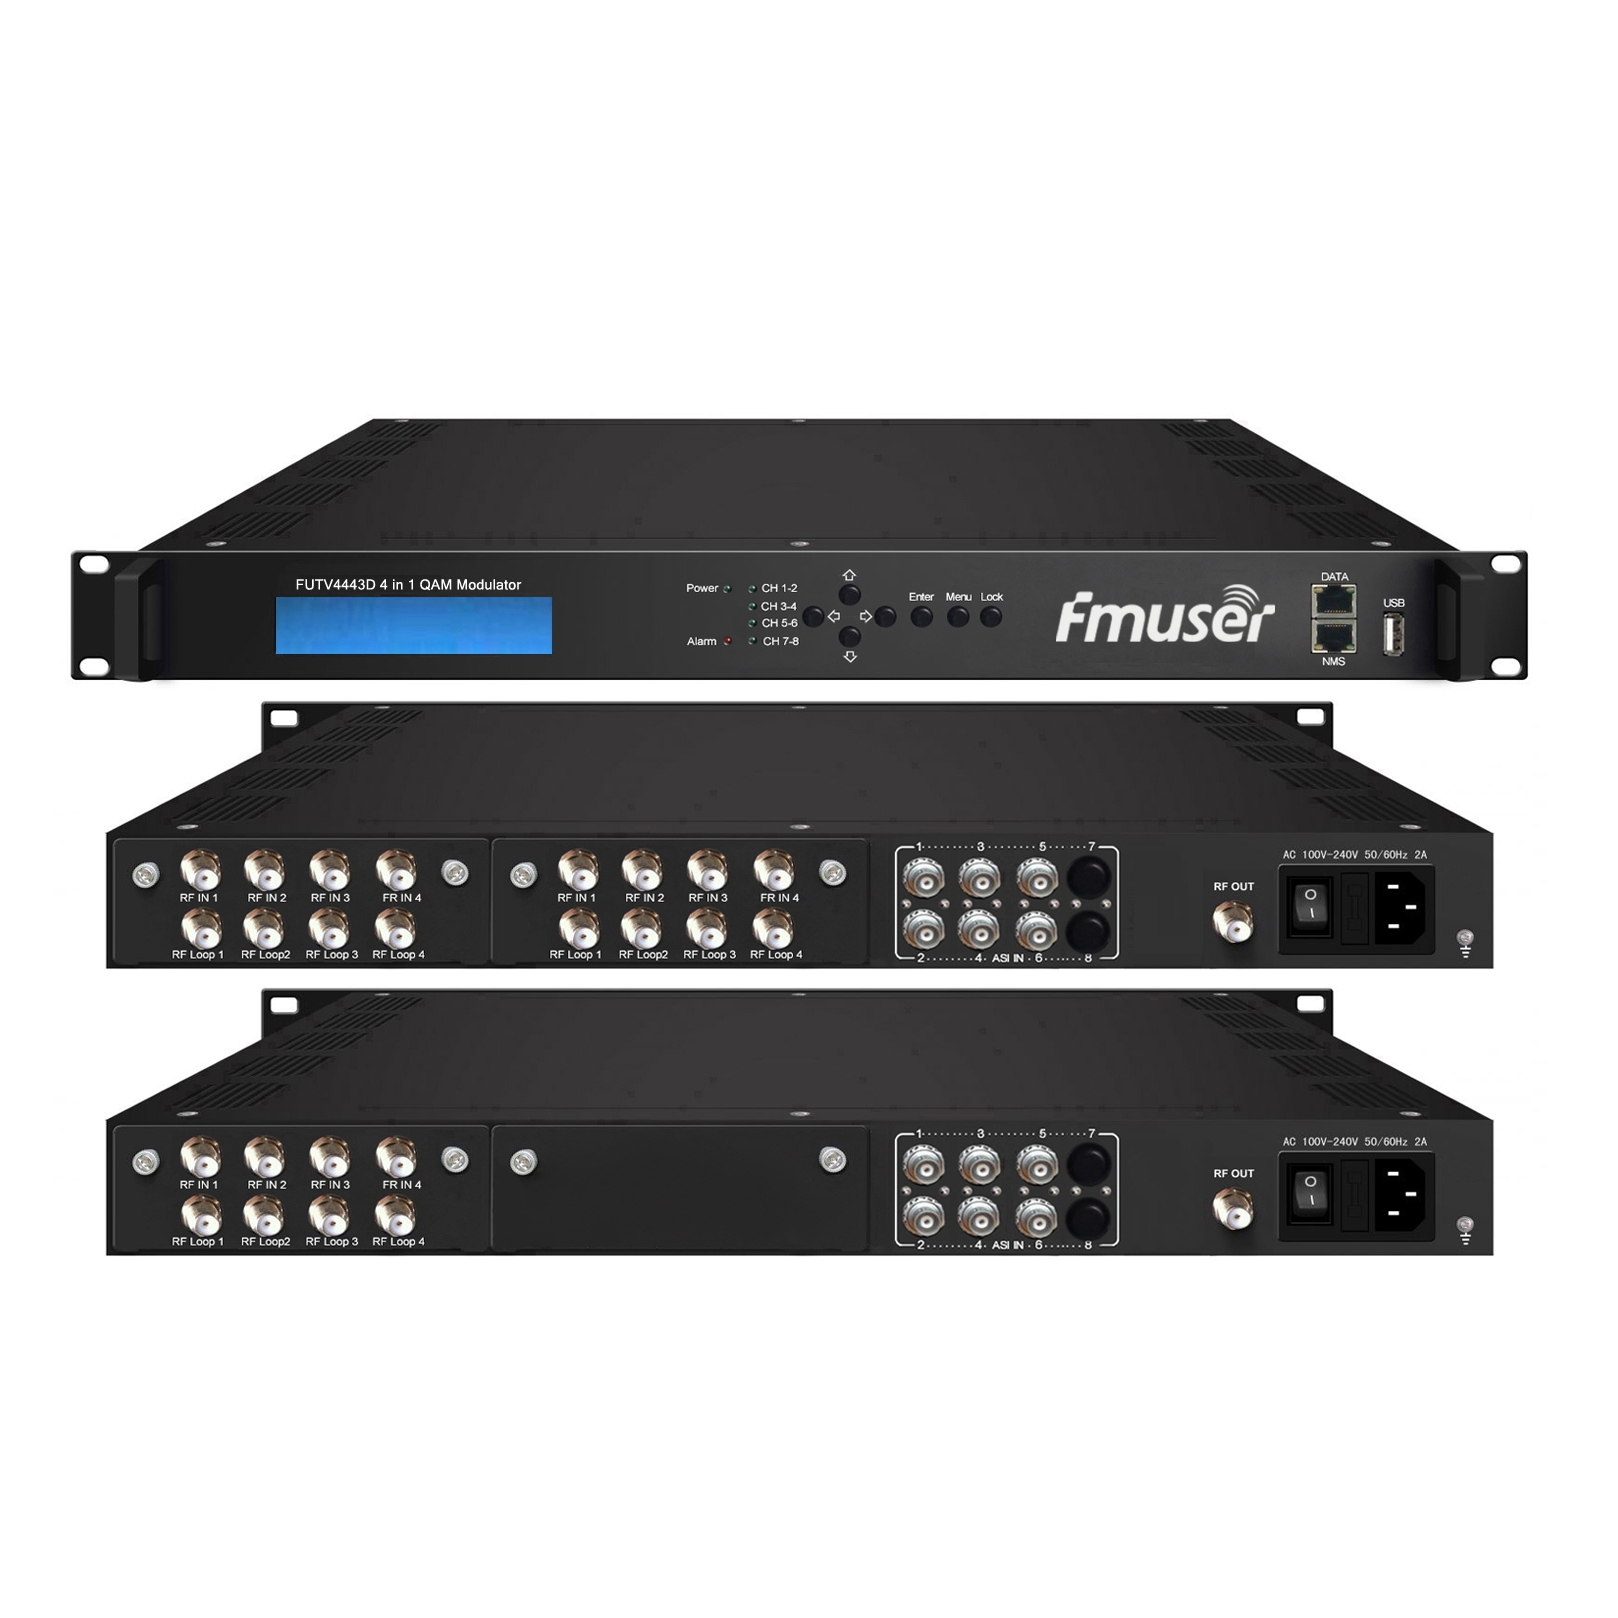 FMUSER FUTV4443D 4 in 1 Mux-Scrambling QAM modulatore (8Tuner + 6 * ASI in, 4Tuner + 6 * ASI + 2 * IP out) con web managementtor